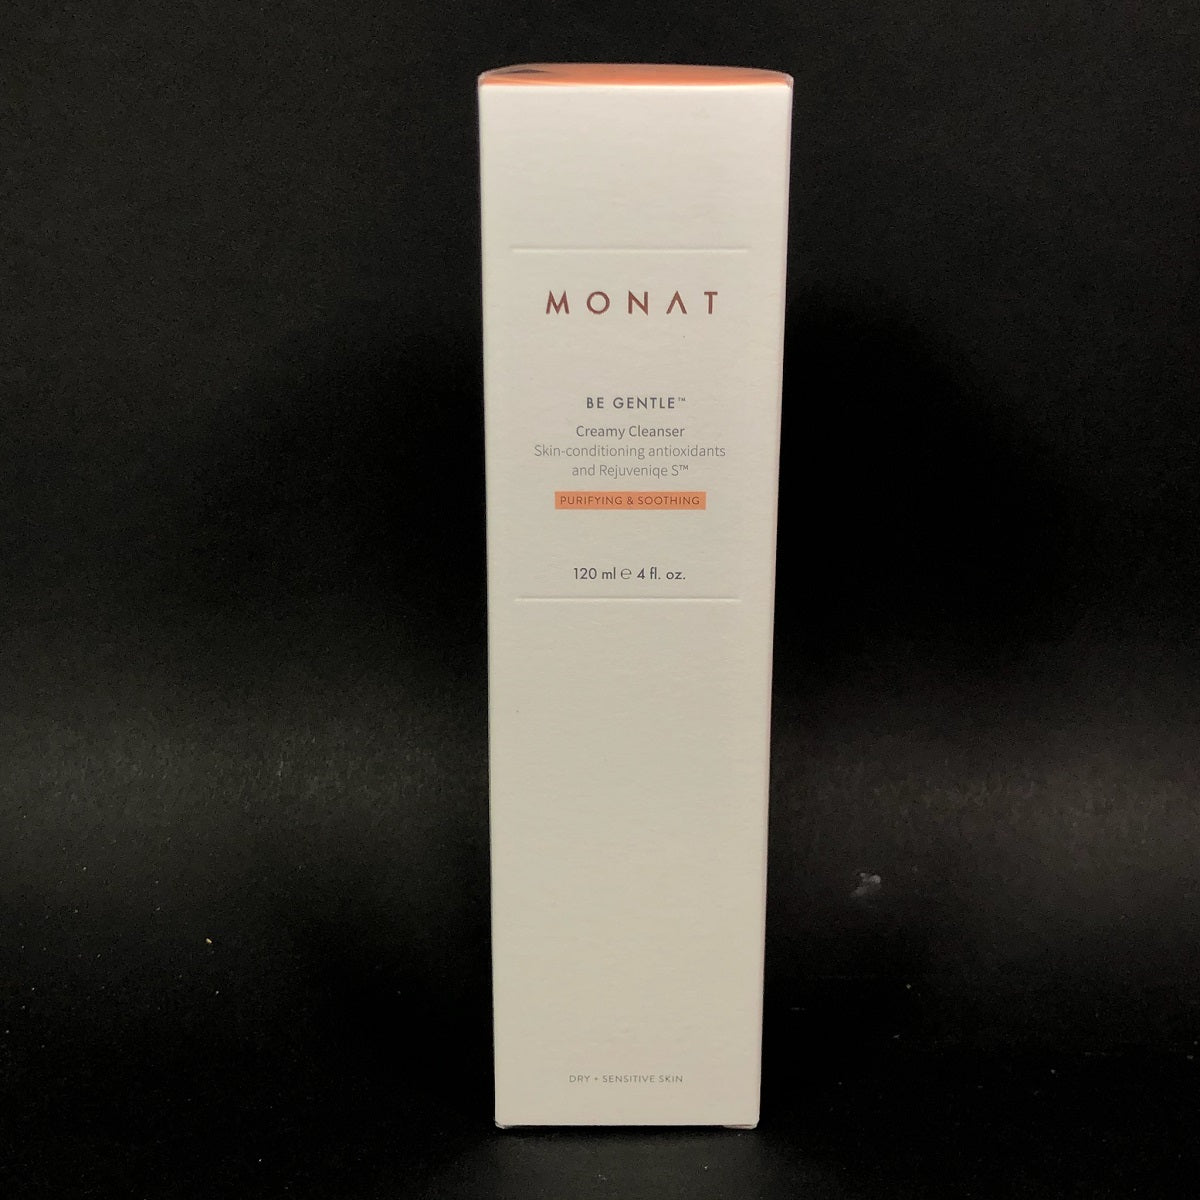 Monat Be Gentle Creamy Cleanser 4 oz